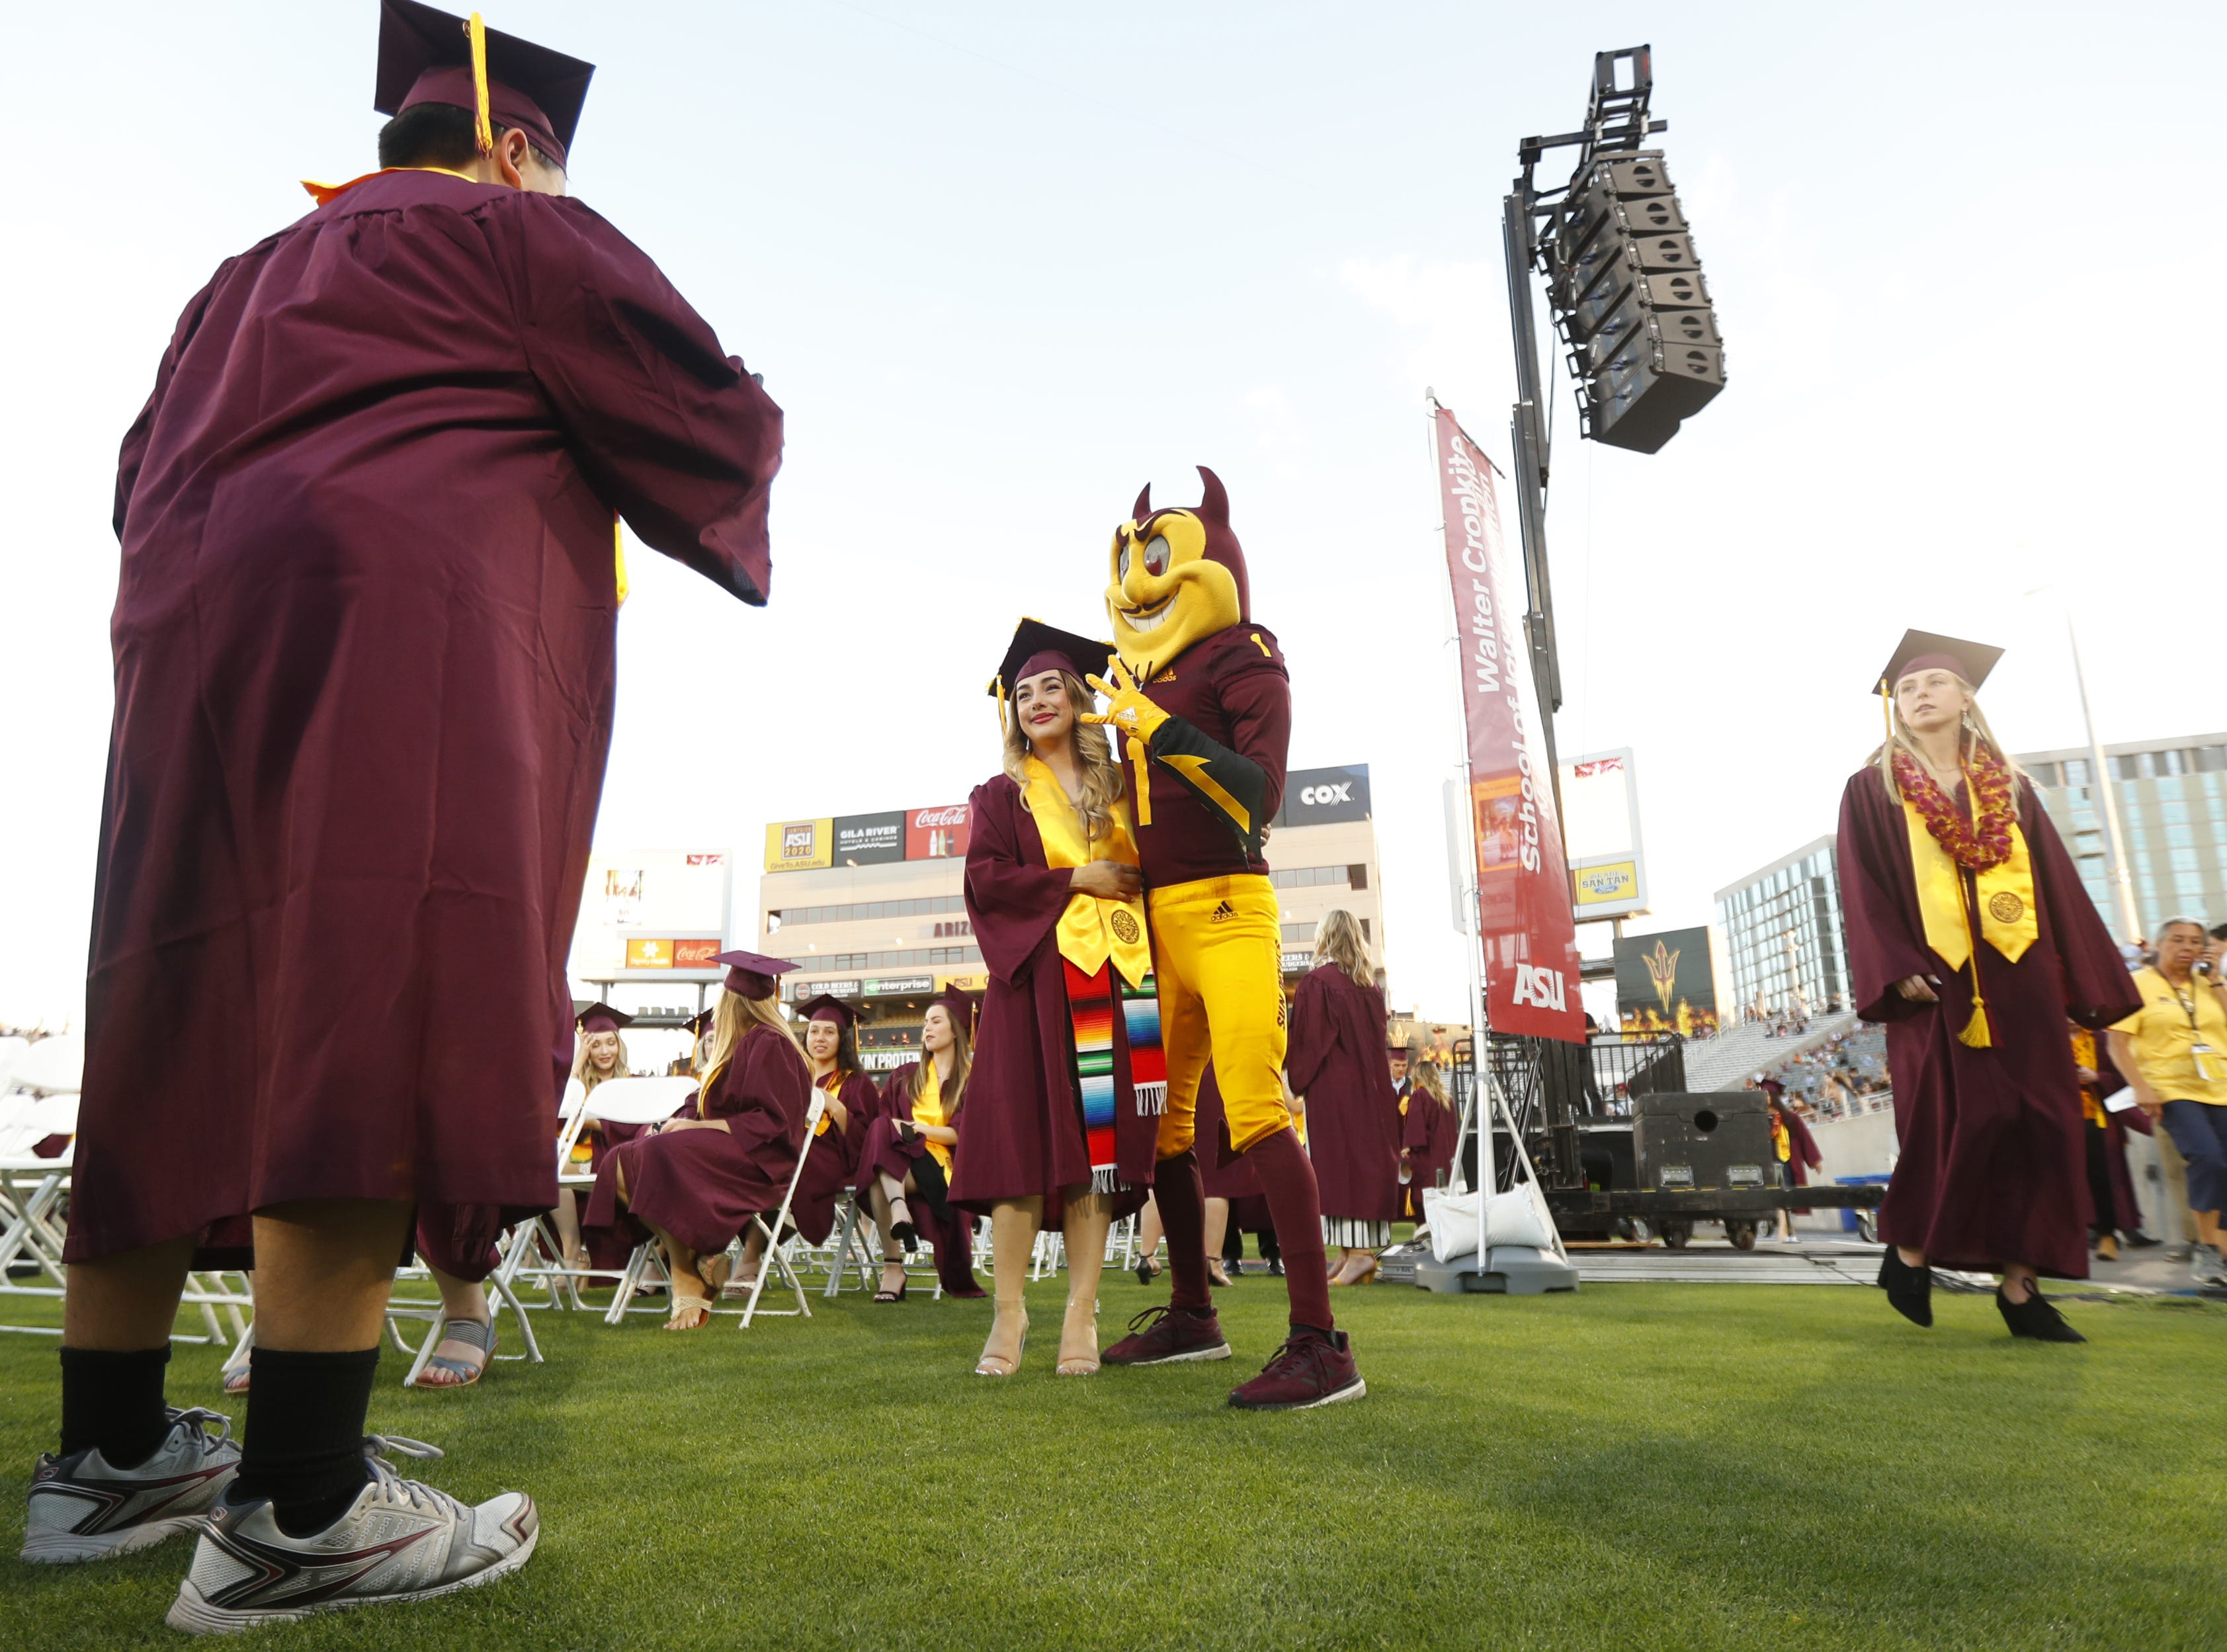 ASU graduates take pics with Sparky during ASU's Undergraduate Commencement at Sun Devil Stadium in Tempe, Ariz. on May 6, 2019.